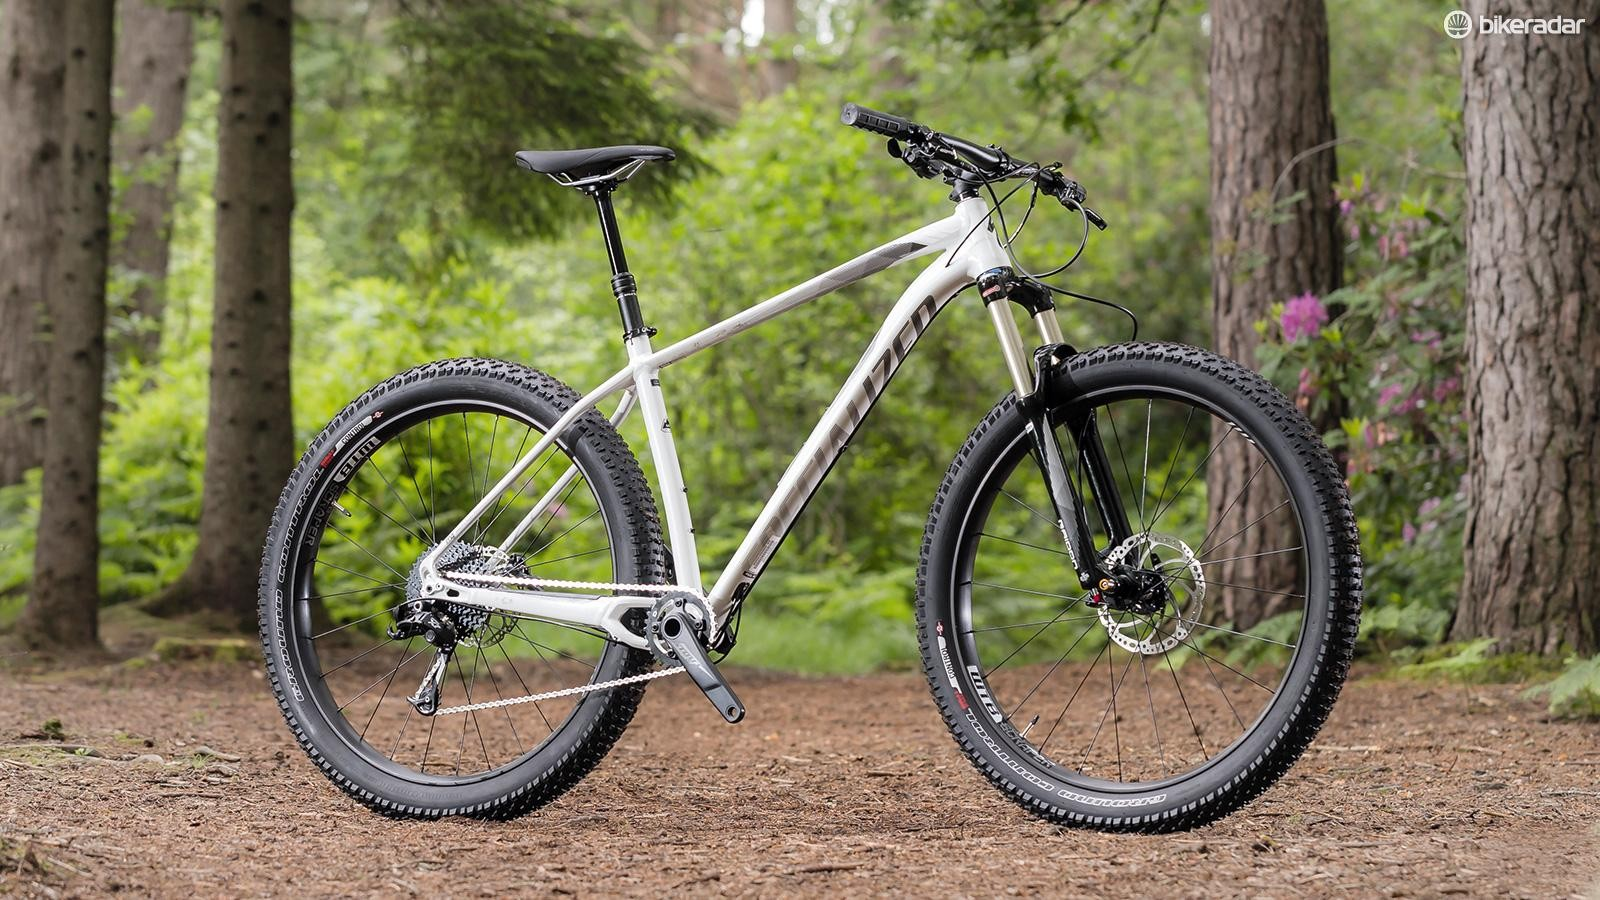 The Specialized Fuse Comp